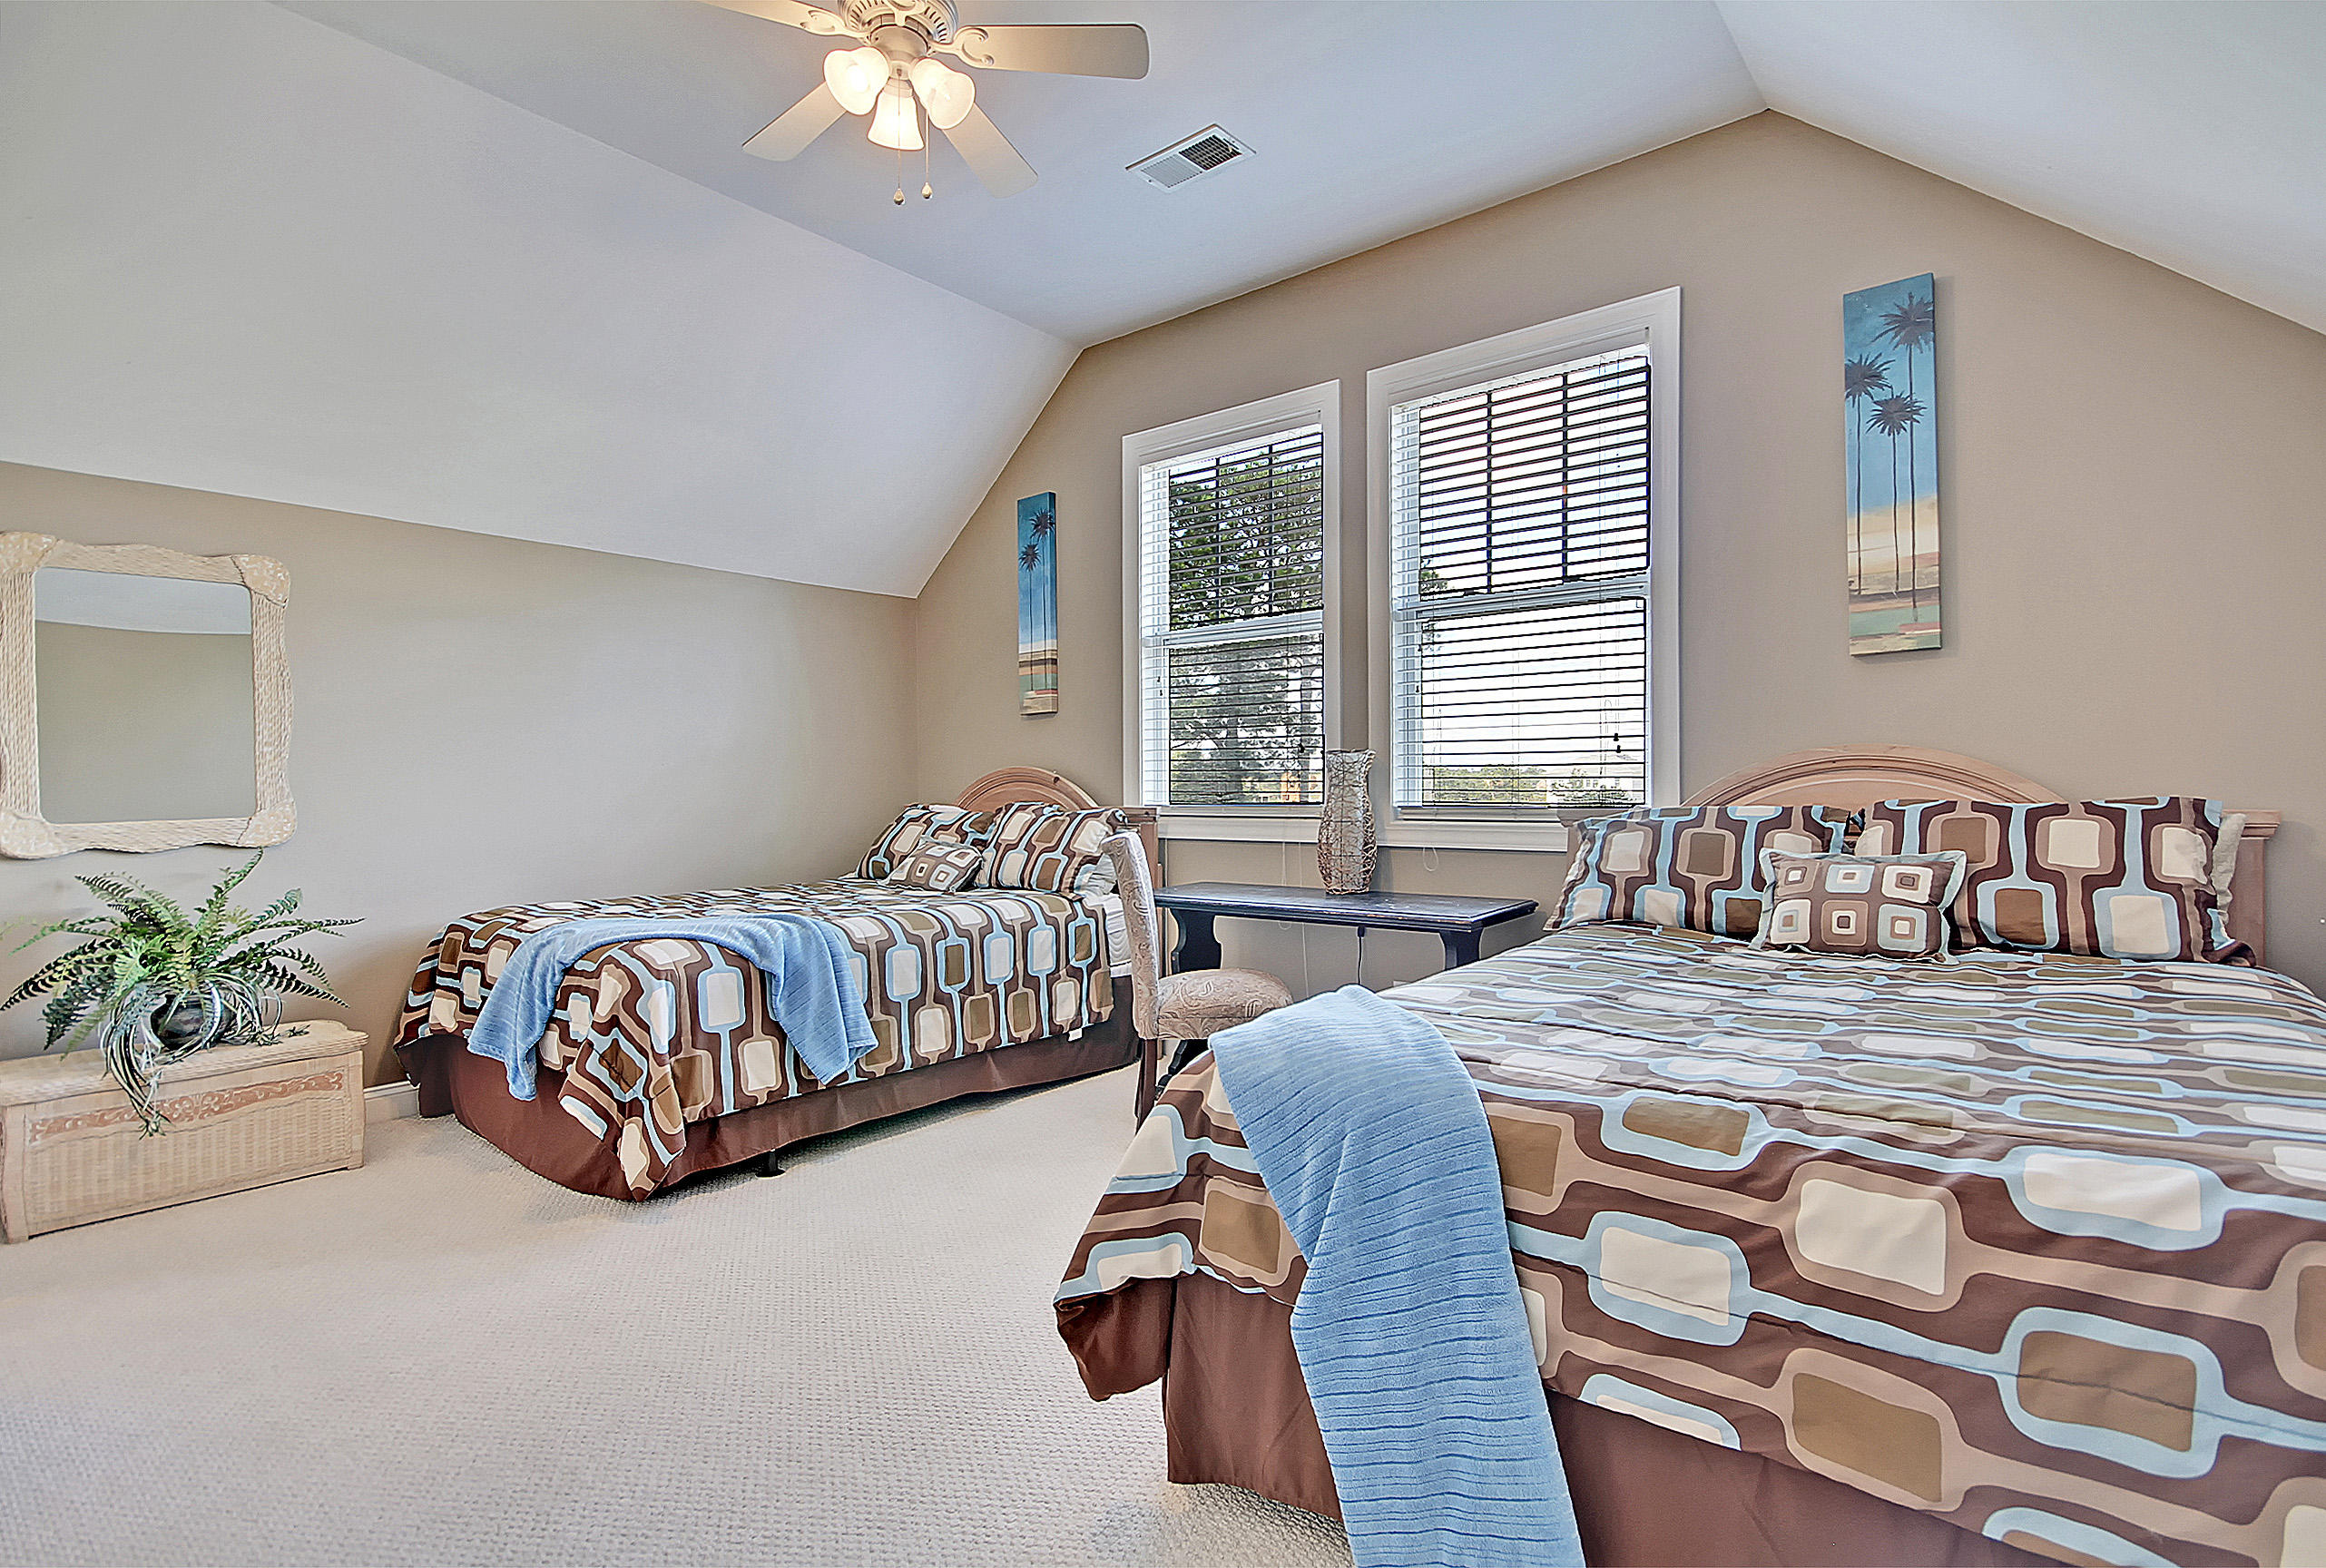 Rivertowne Country Club Homes For Sale - 1536 Rivertowne Country Club, Mount Pleasant, SC - 27